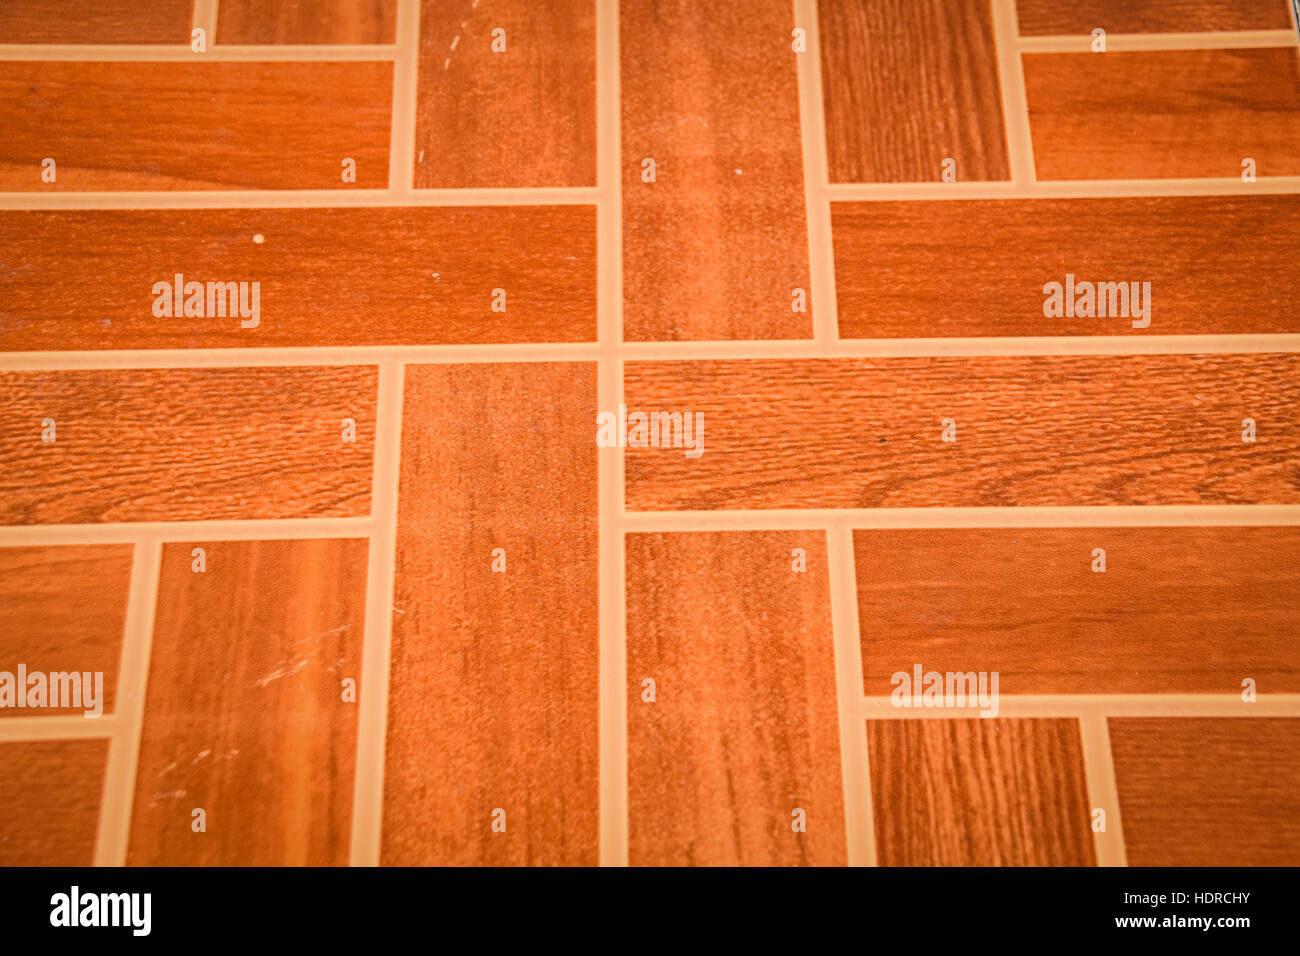 Teracotta rectangular tiles - Stock Image